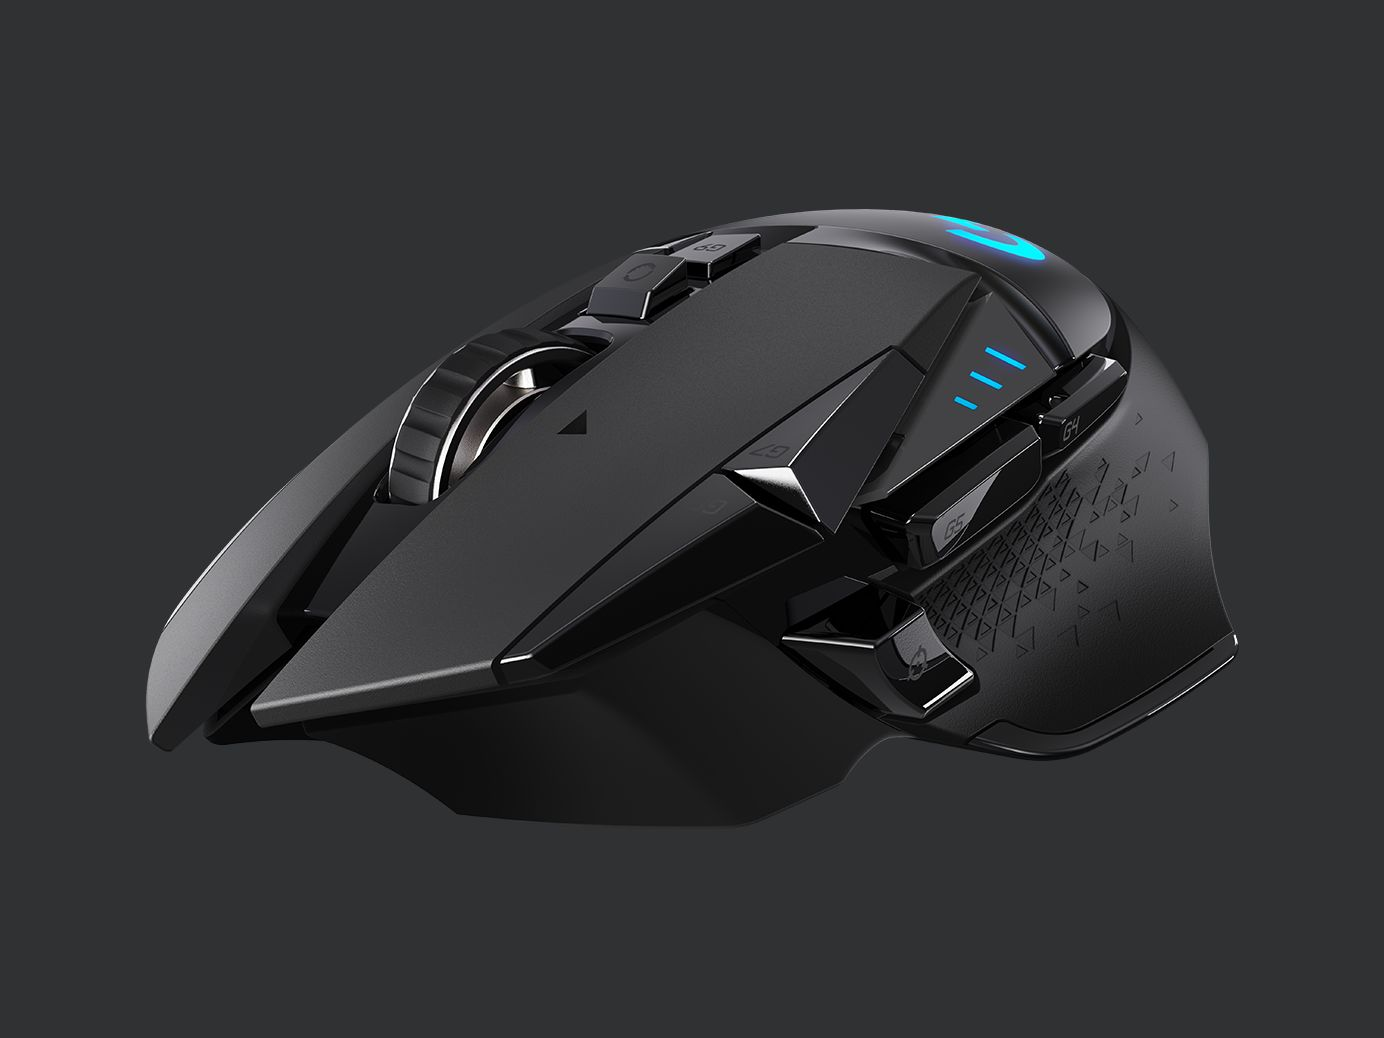 g502-lightspeed-gallery-3.png.imgw.1384.1038